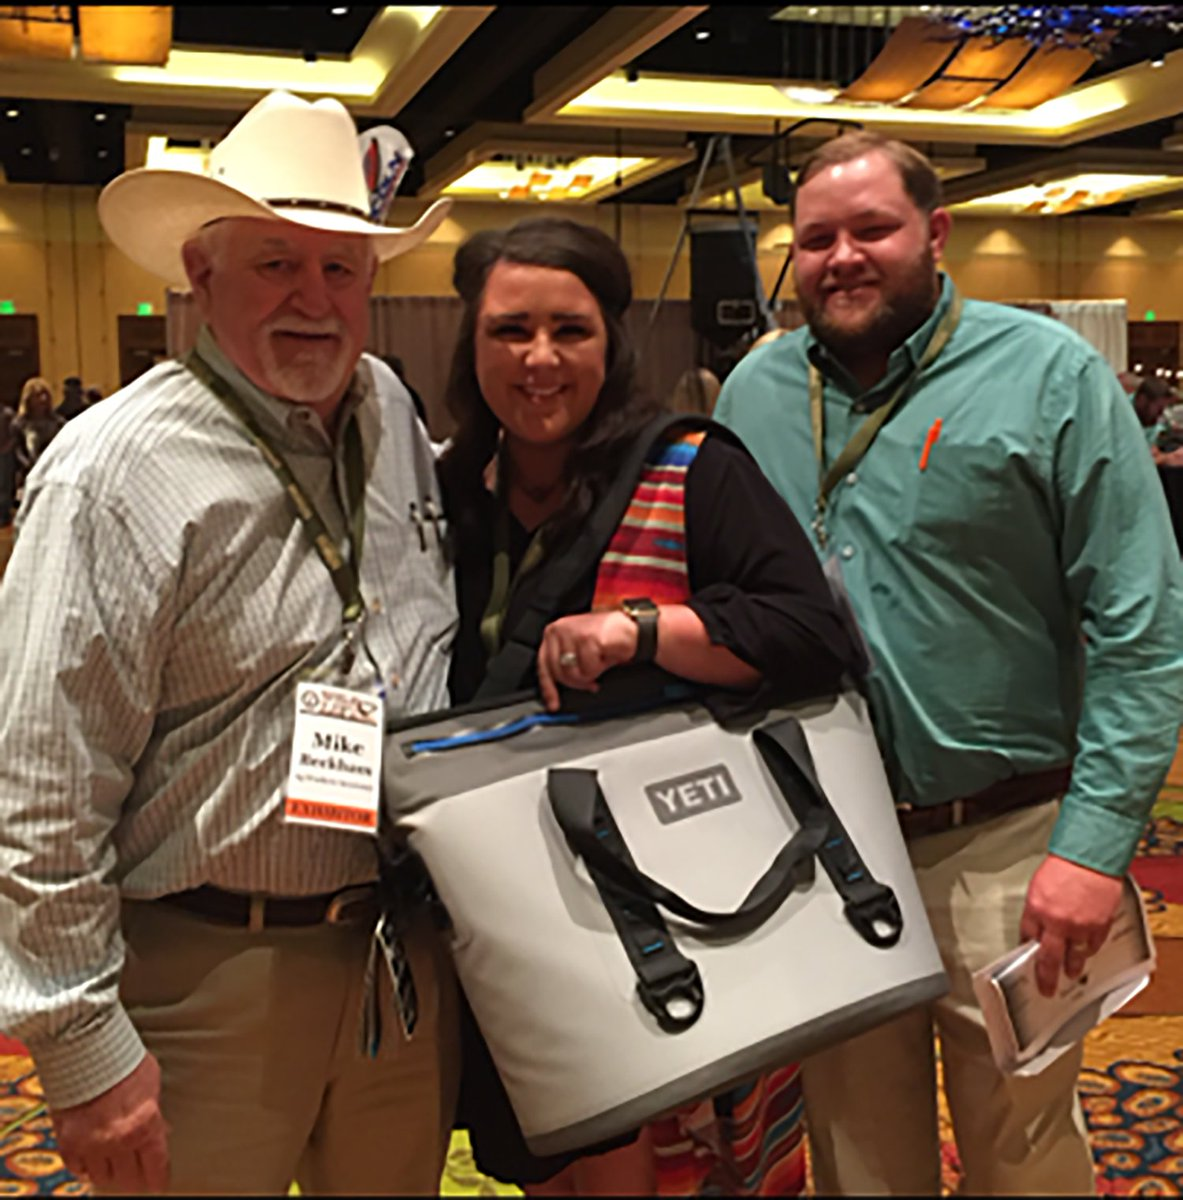 Congrats to our Yeti cooler giveaway winners Ashley and Kevin Stice from Ranger, Texas! #WildLife <br>http://pic.twitter.com/HEQJNVpgQ6